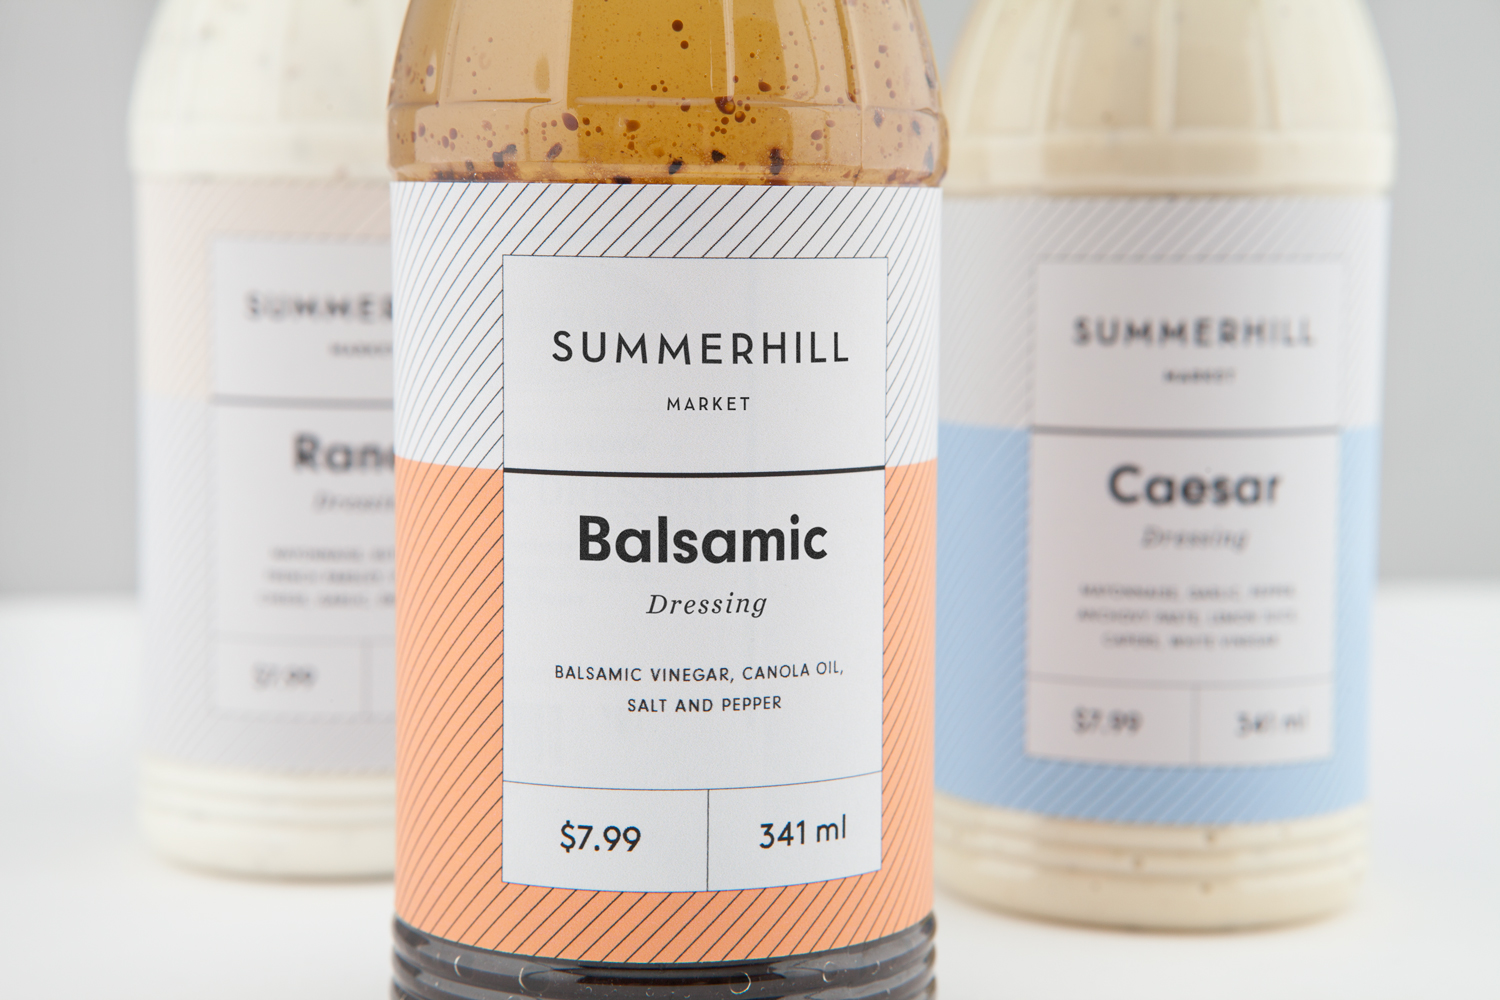 Branding and salad dressing packaging designed by Canadian studio Blok for Toronto based boutique grocery store Summerhill Market